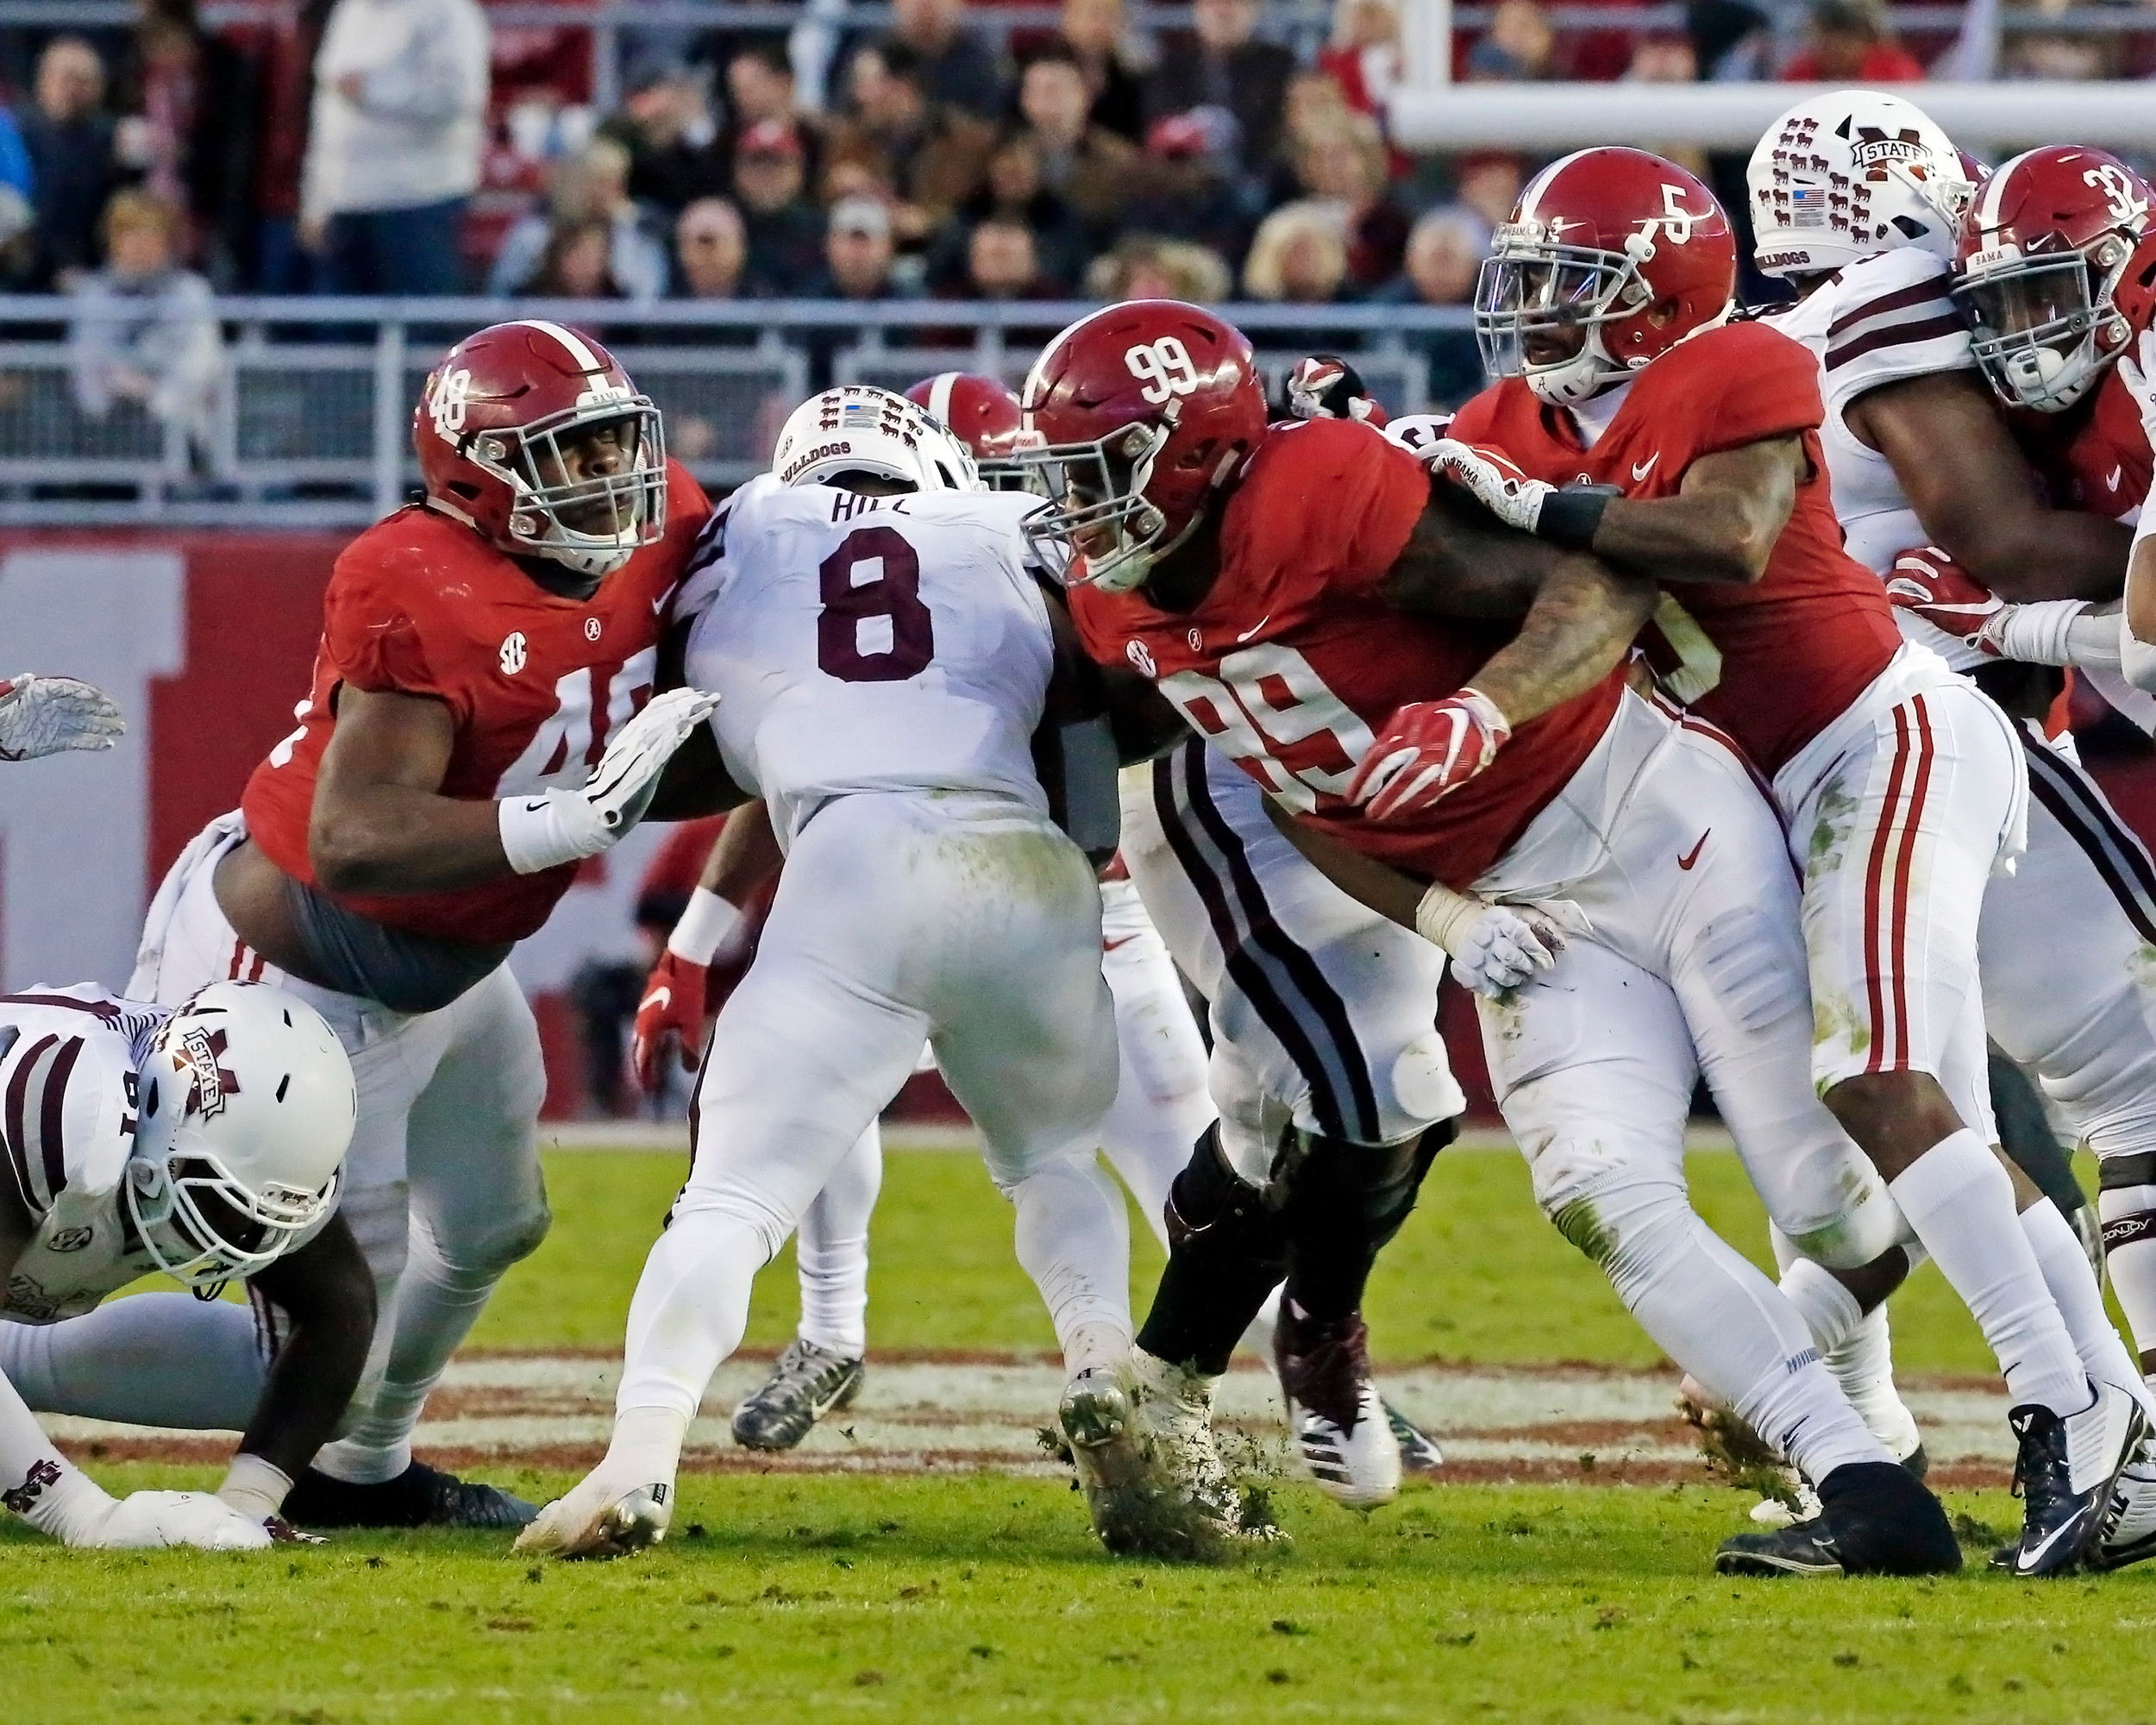 Alabama Crimson Tide defensive linemen Phidarian Mathis (48) and Raekwon Davis (99) wrap up Mississippi State Bulldogs running back Kylin Hill (8) during the second half of the game between Mississippi State and the University of Alabama at Bryant-Denny Stadium in Tuscaloosa, Al. Credit: Jason Clark / Daily Mountain Eagle